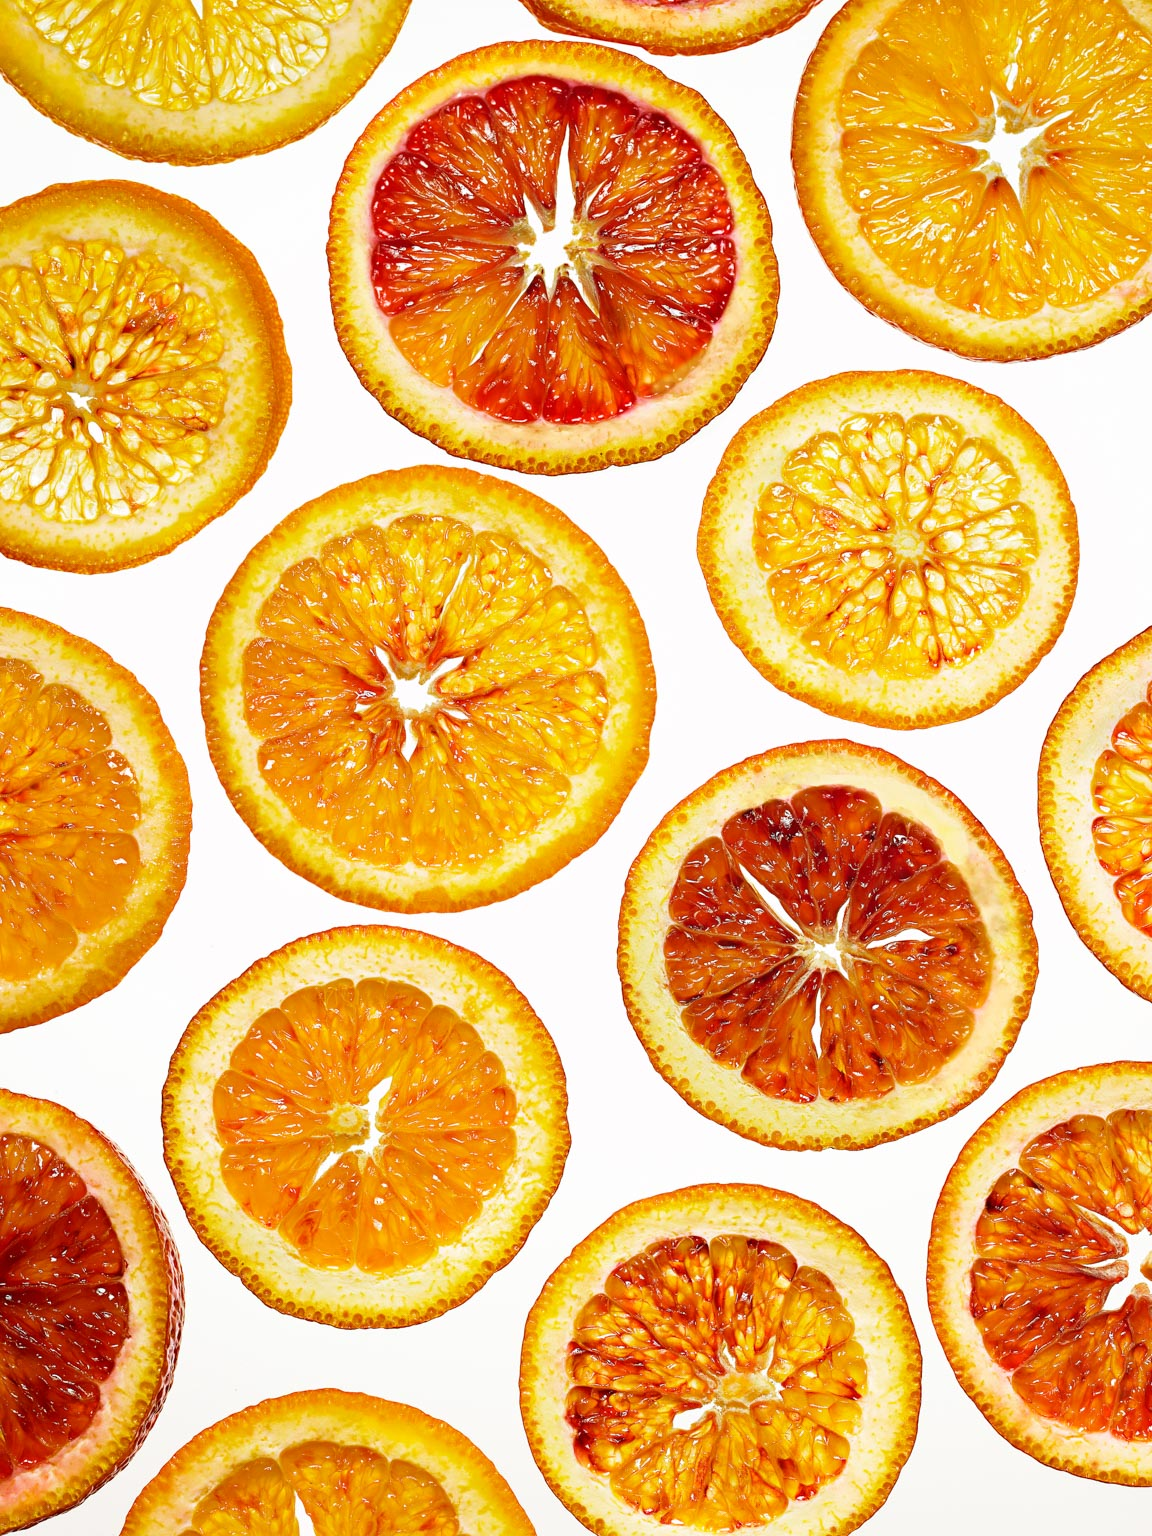 529_blood_oranges_038_42-16080967